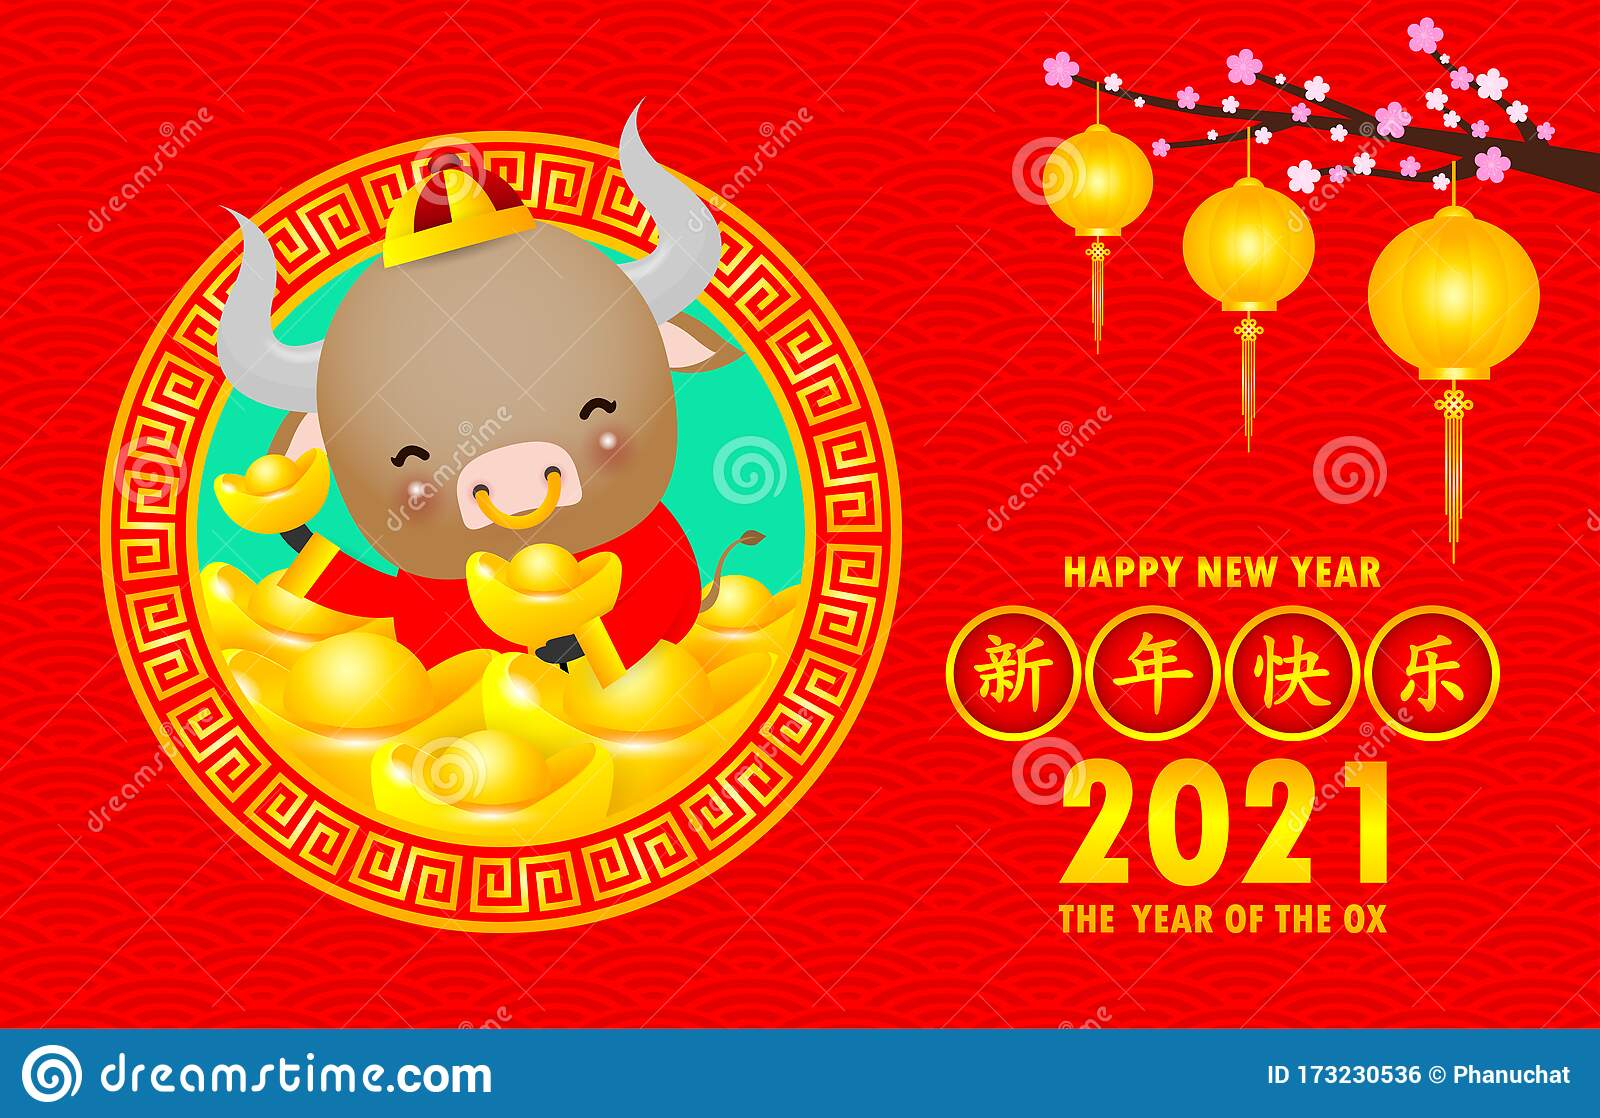 Happy Chinese New Year 2021 Greeting Card Cute Little Cow Holding Chinese Gold The Year Of The Ox Zodiac Cartoon Isolated Vector Stock Vector Illustration Of 2021 Card 173230536